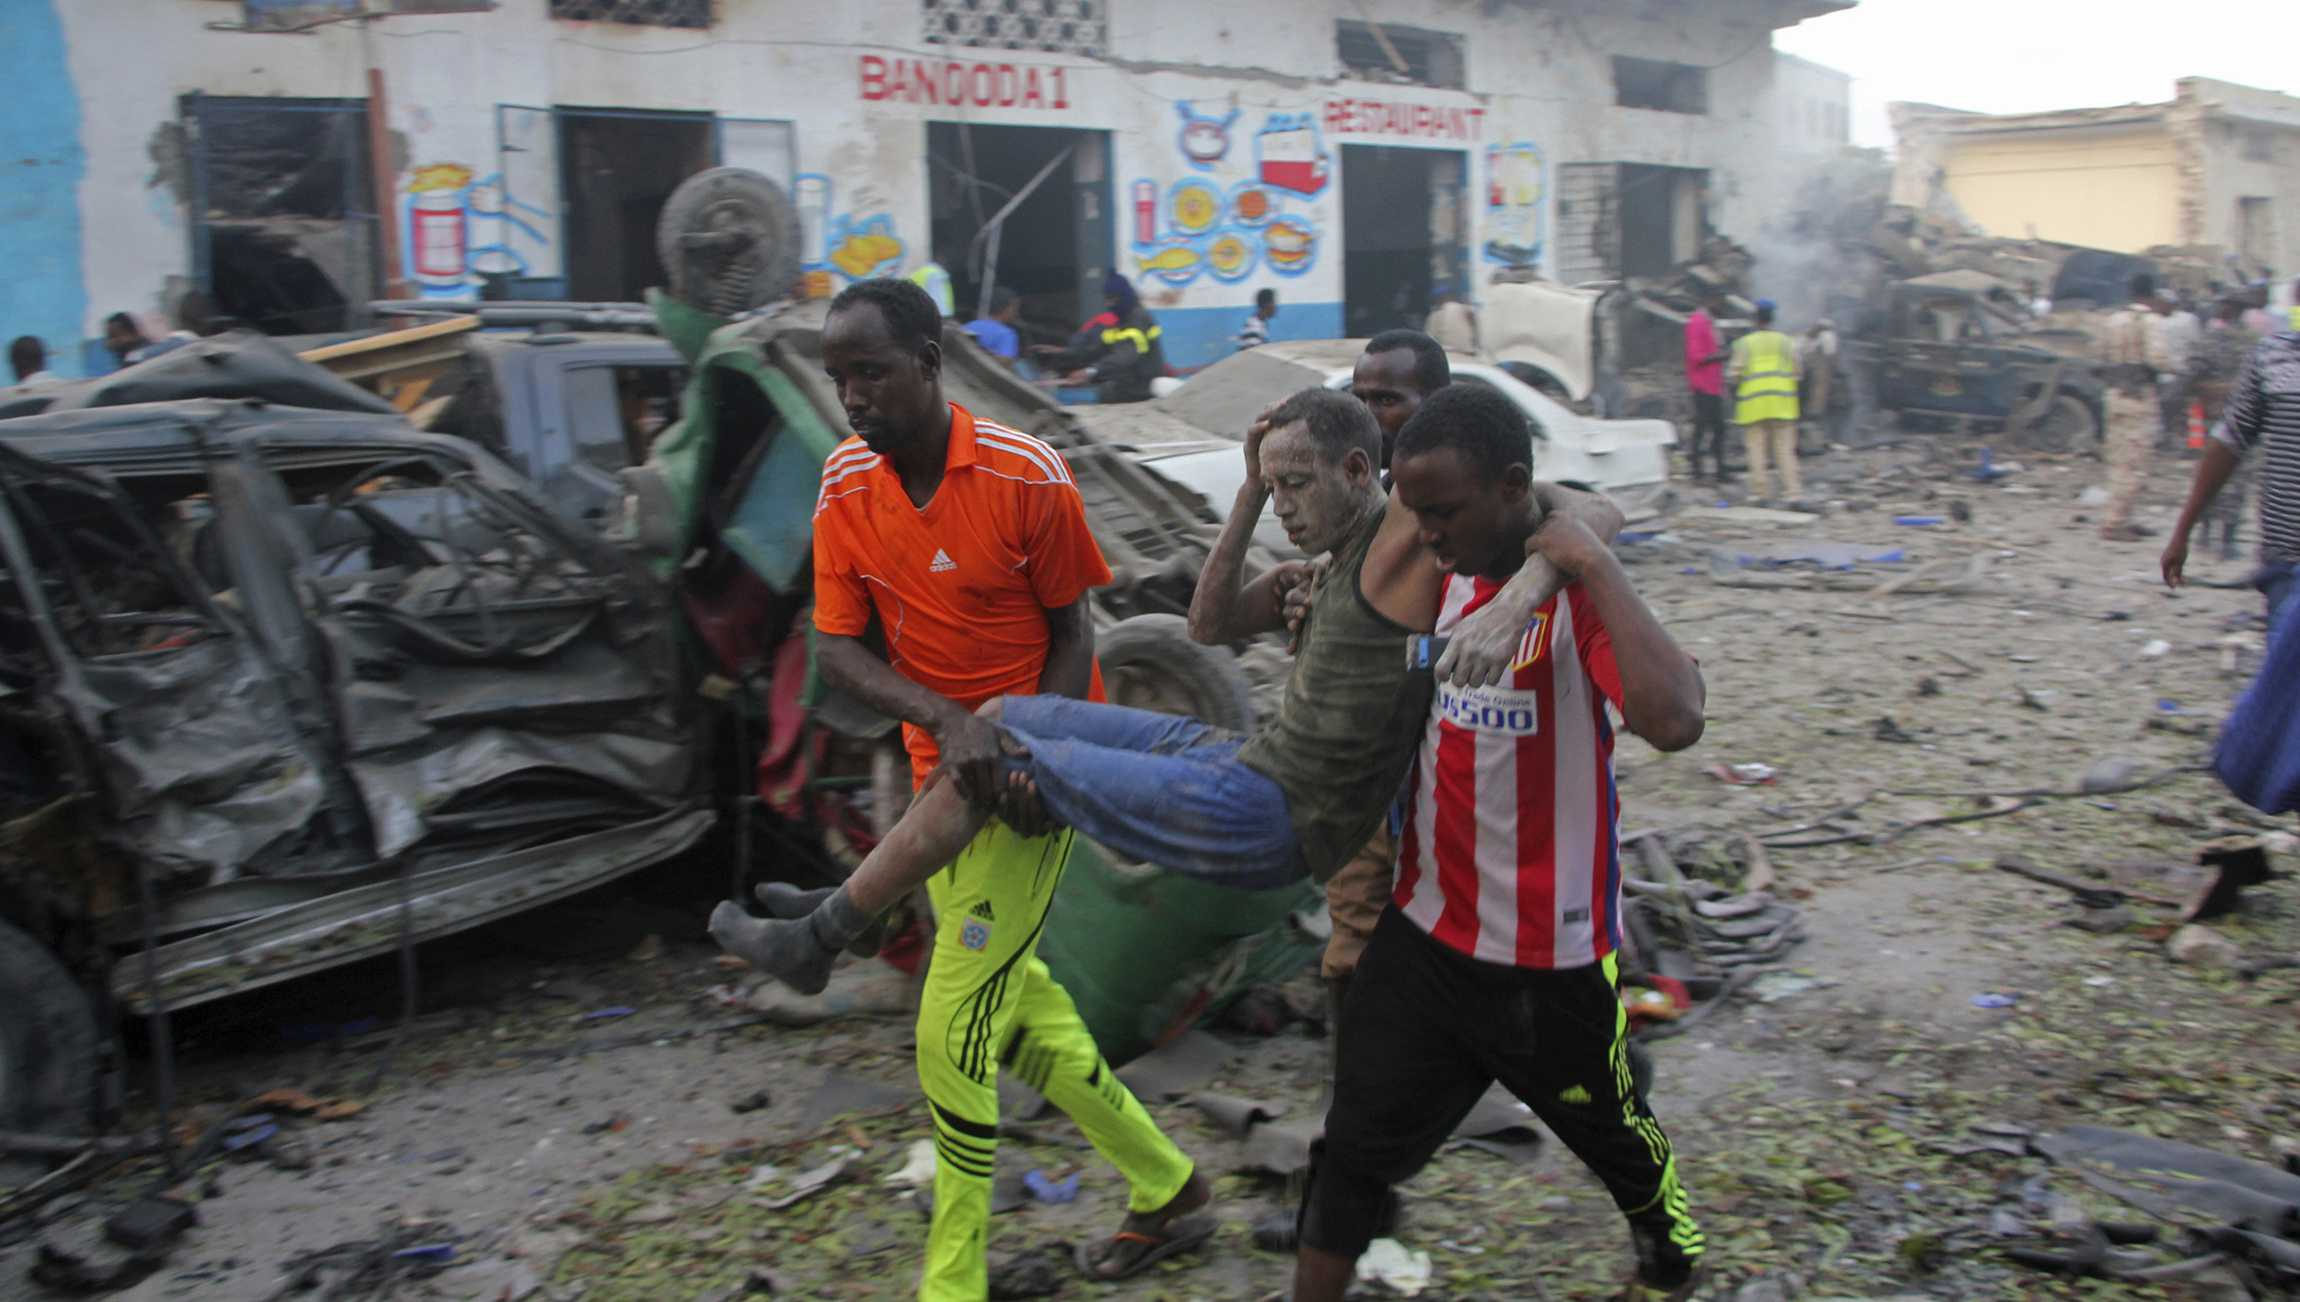 Somalis carry away a man injured after a car bomb was detonated in Mogadishu, Somalia Saturday, Oct 28, 2017. A suicide car bomb exploded outside a popular hotel in Somalia's capital on Saturday, killing at least 10 people and wounding more than 11, while gunfire could be heard inside, police said. A second blast was heard in the area minutes later.